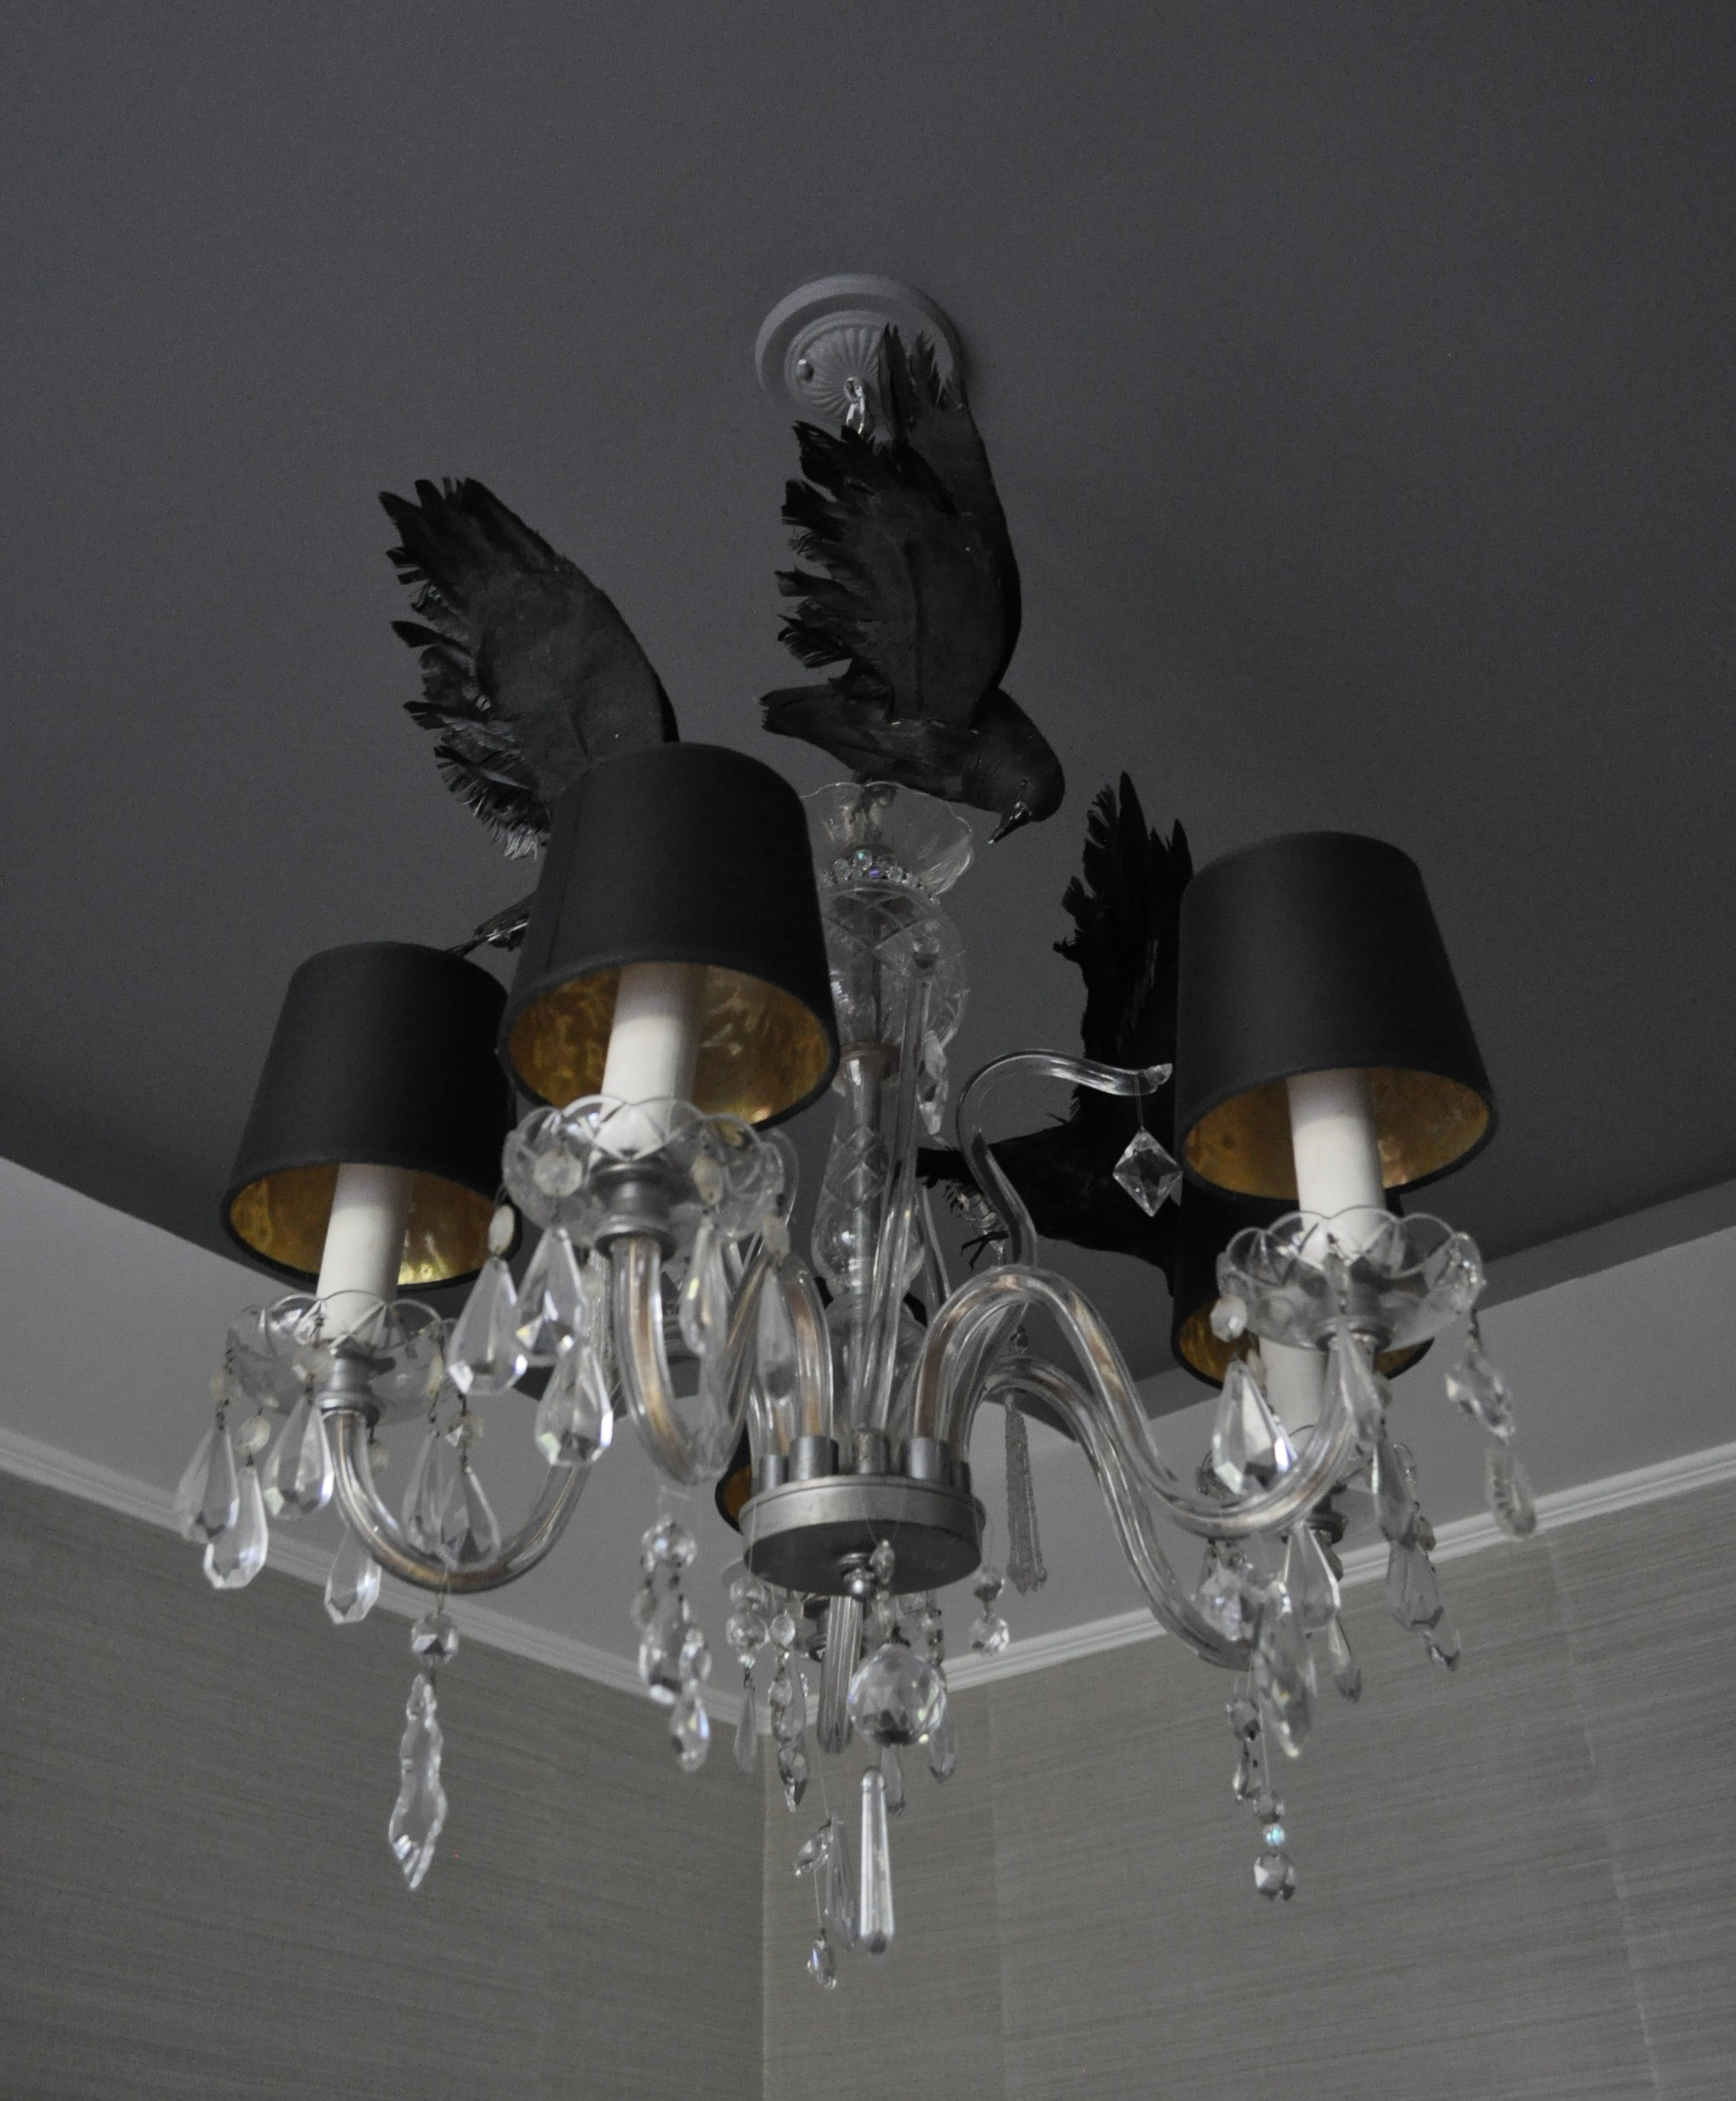 Crows circling the chandelier